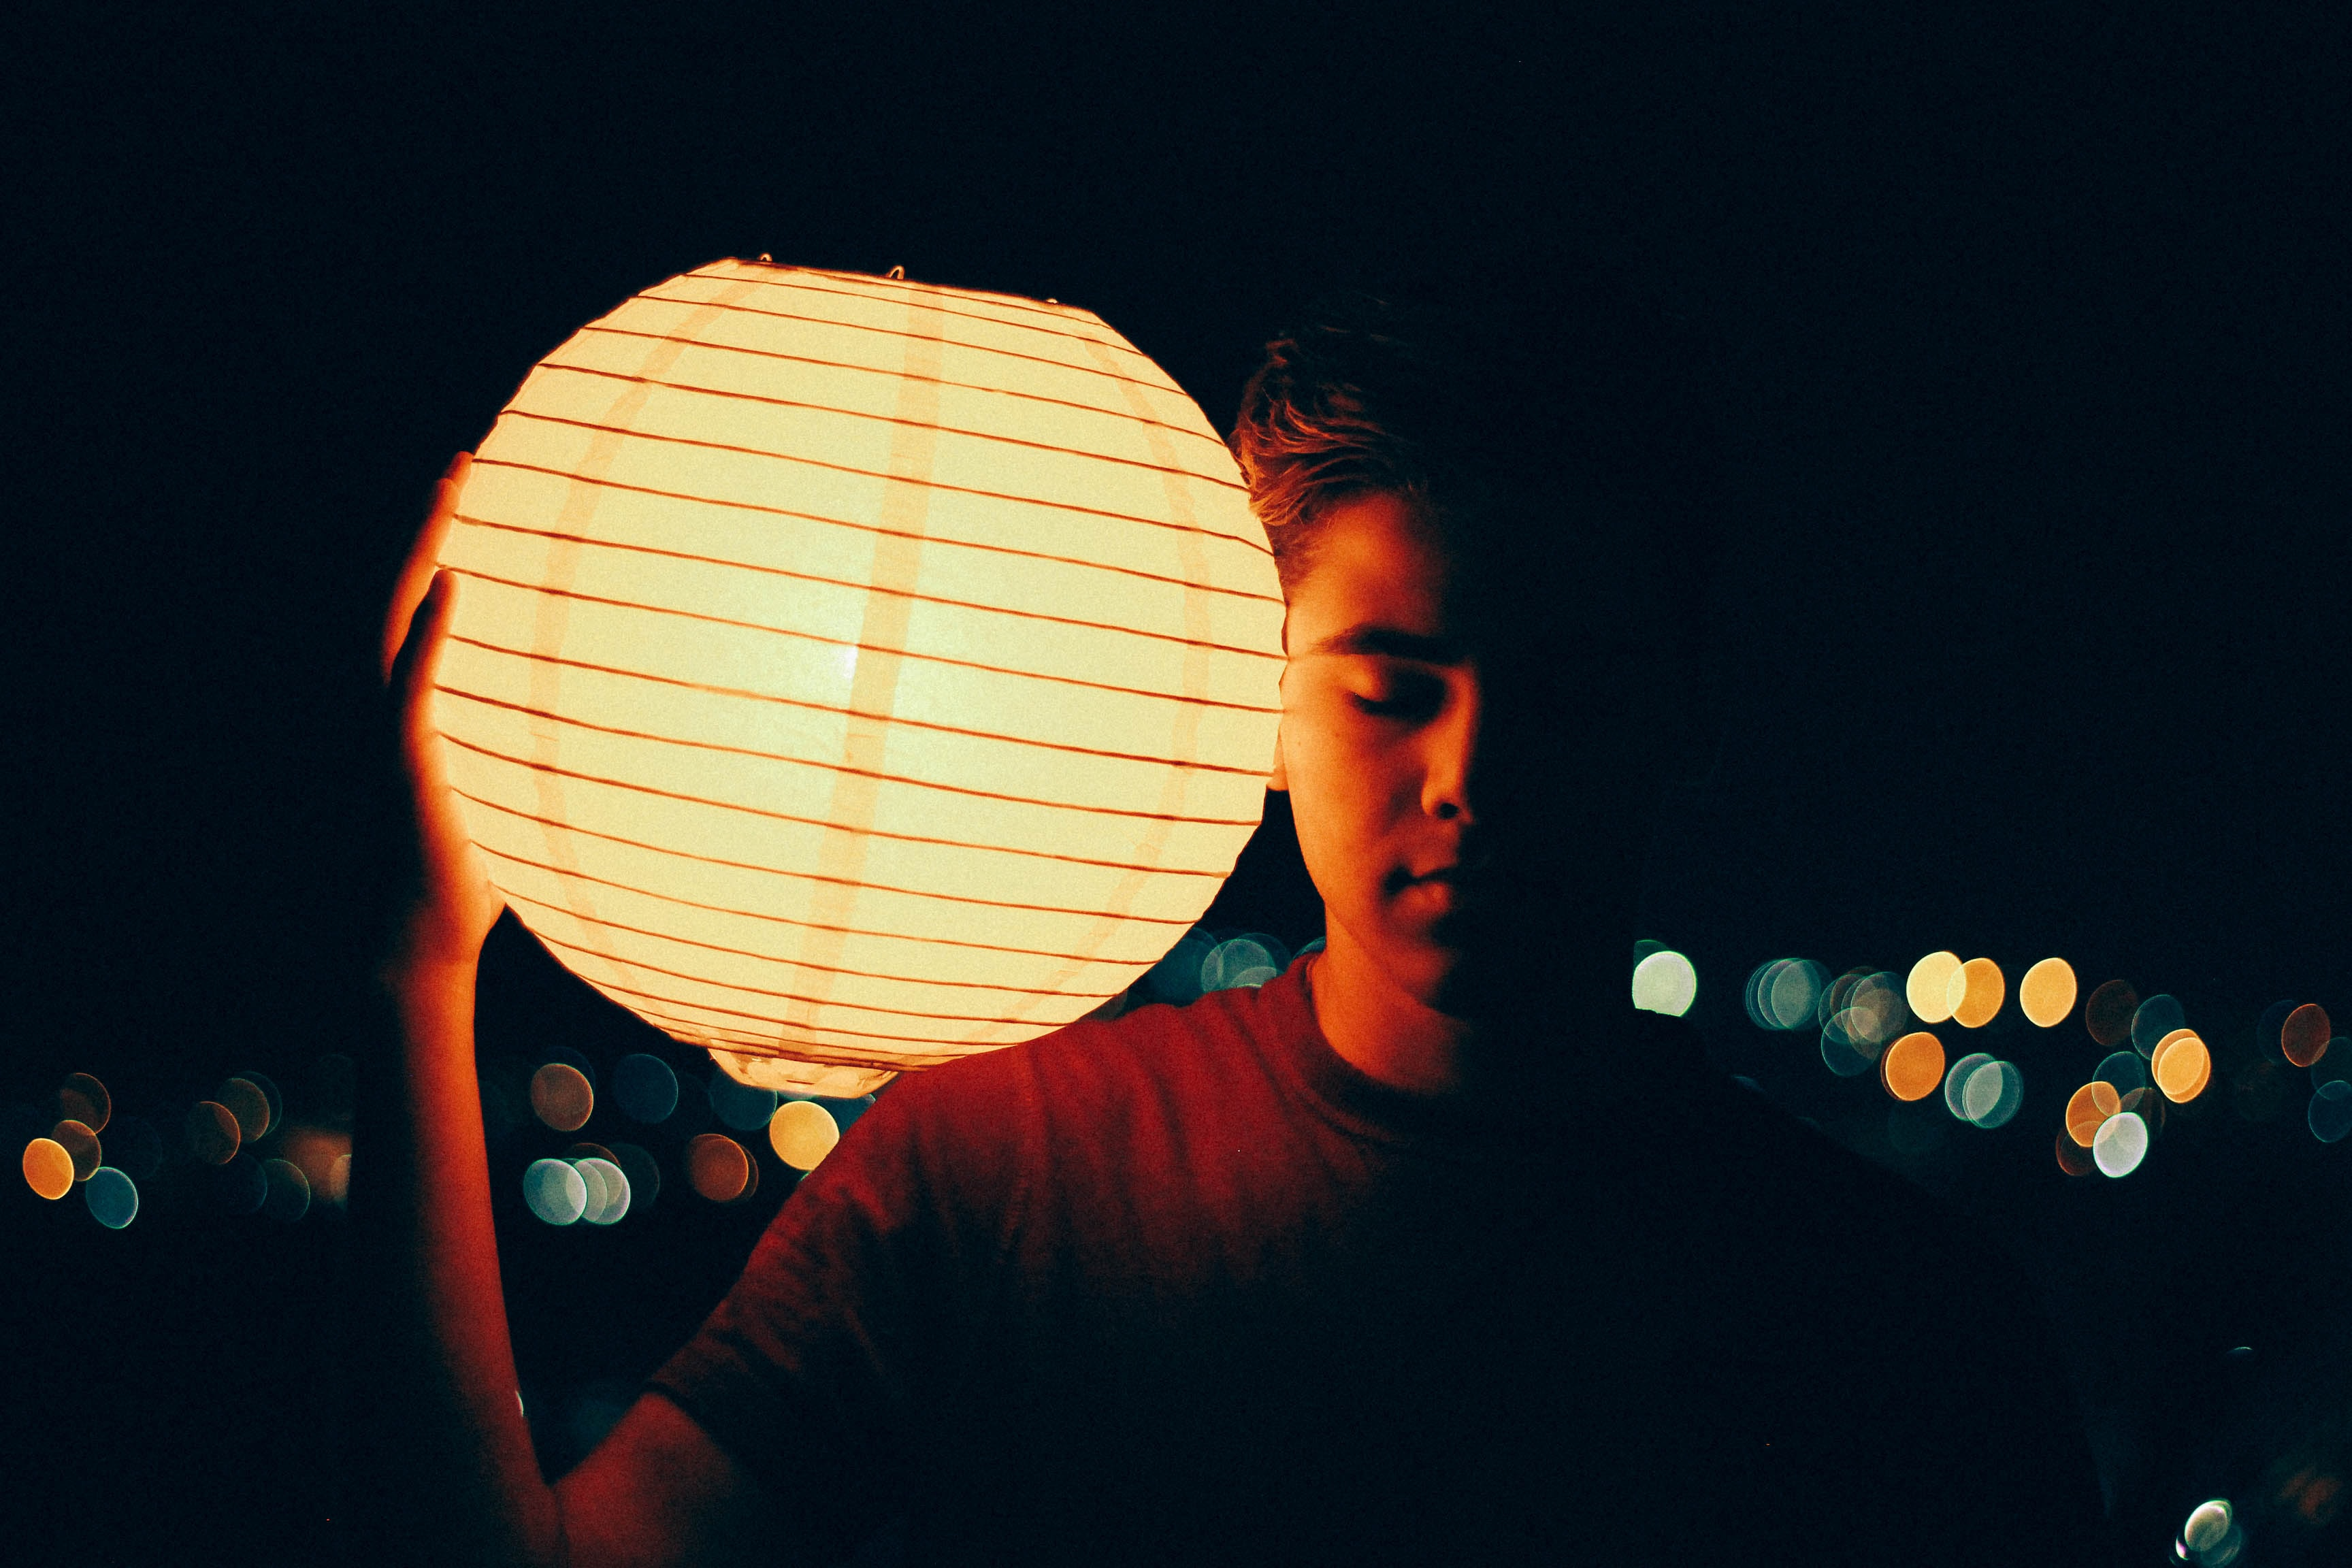 man holding lantern during nighttime